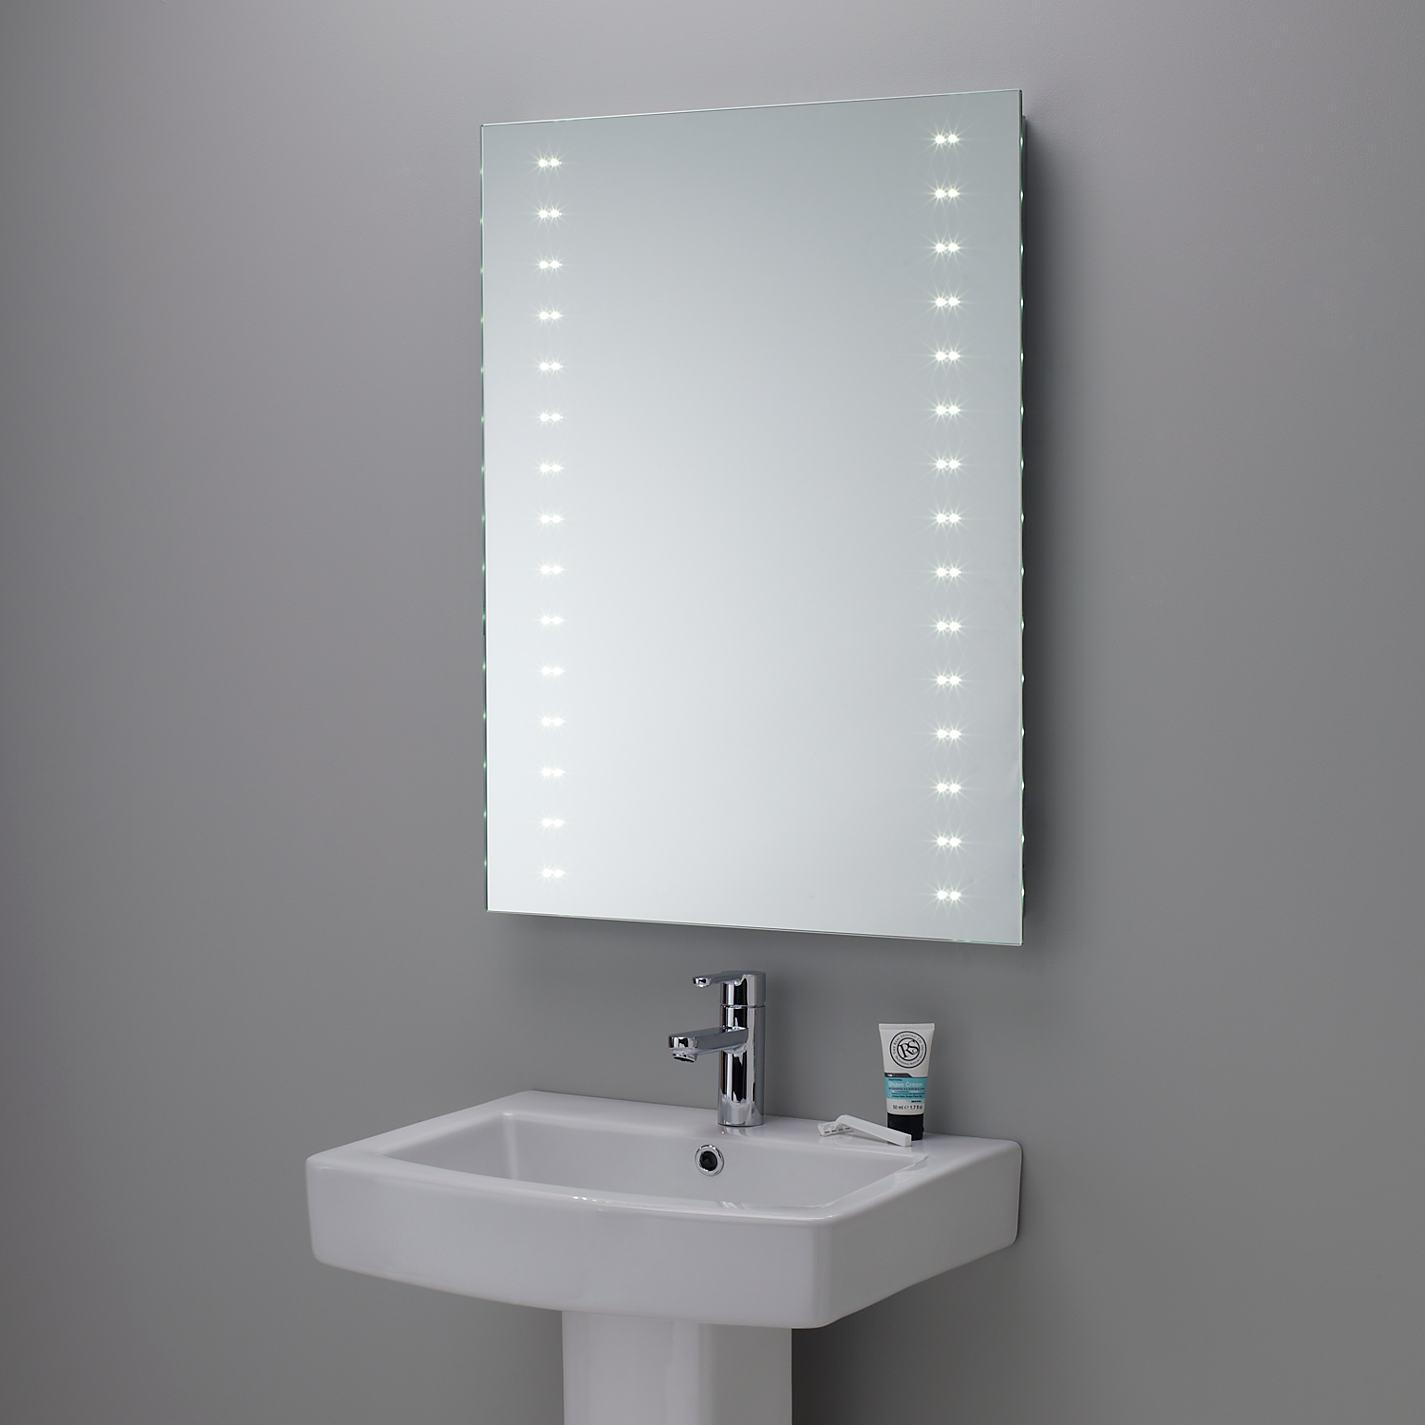 Bathroom : Amazing Elegant Some Details About Bathroom Mirrors Throughout Bathroom Mirrors With Led Lights (Image 1 of 20)